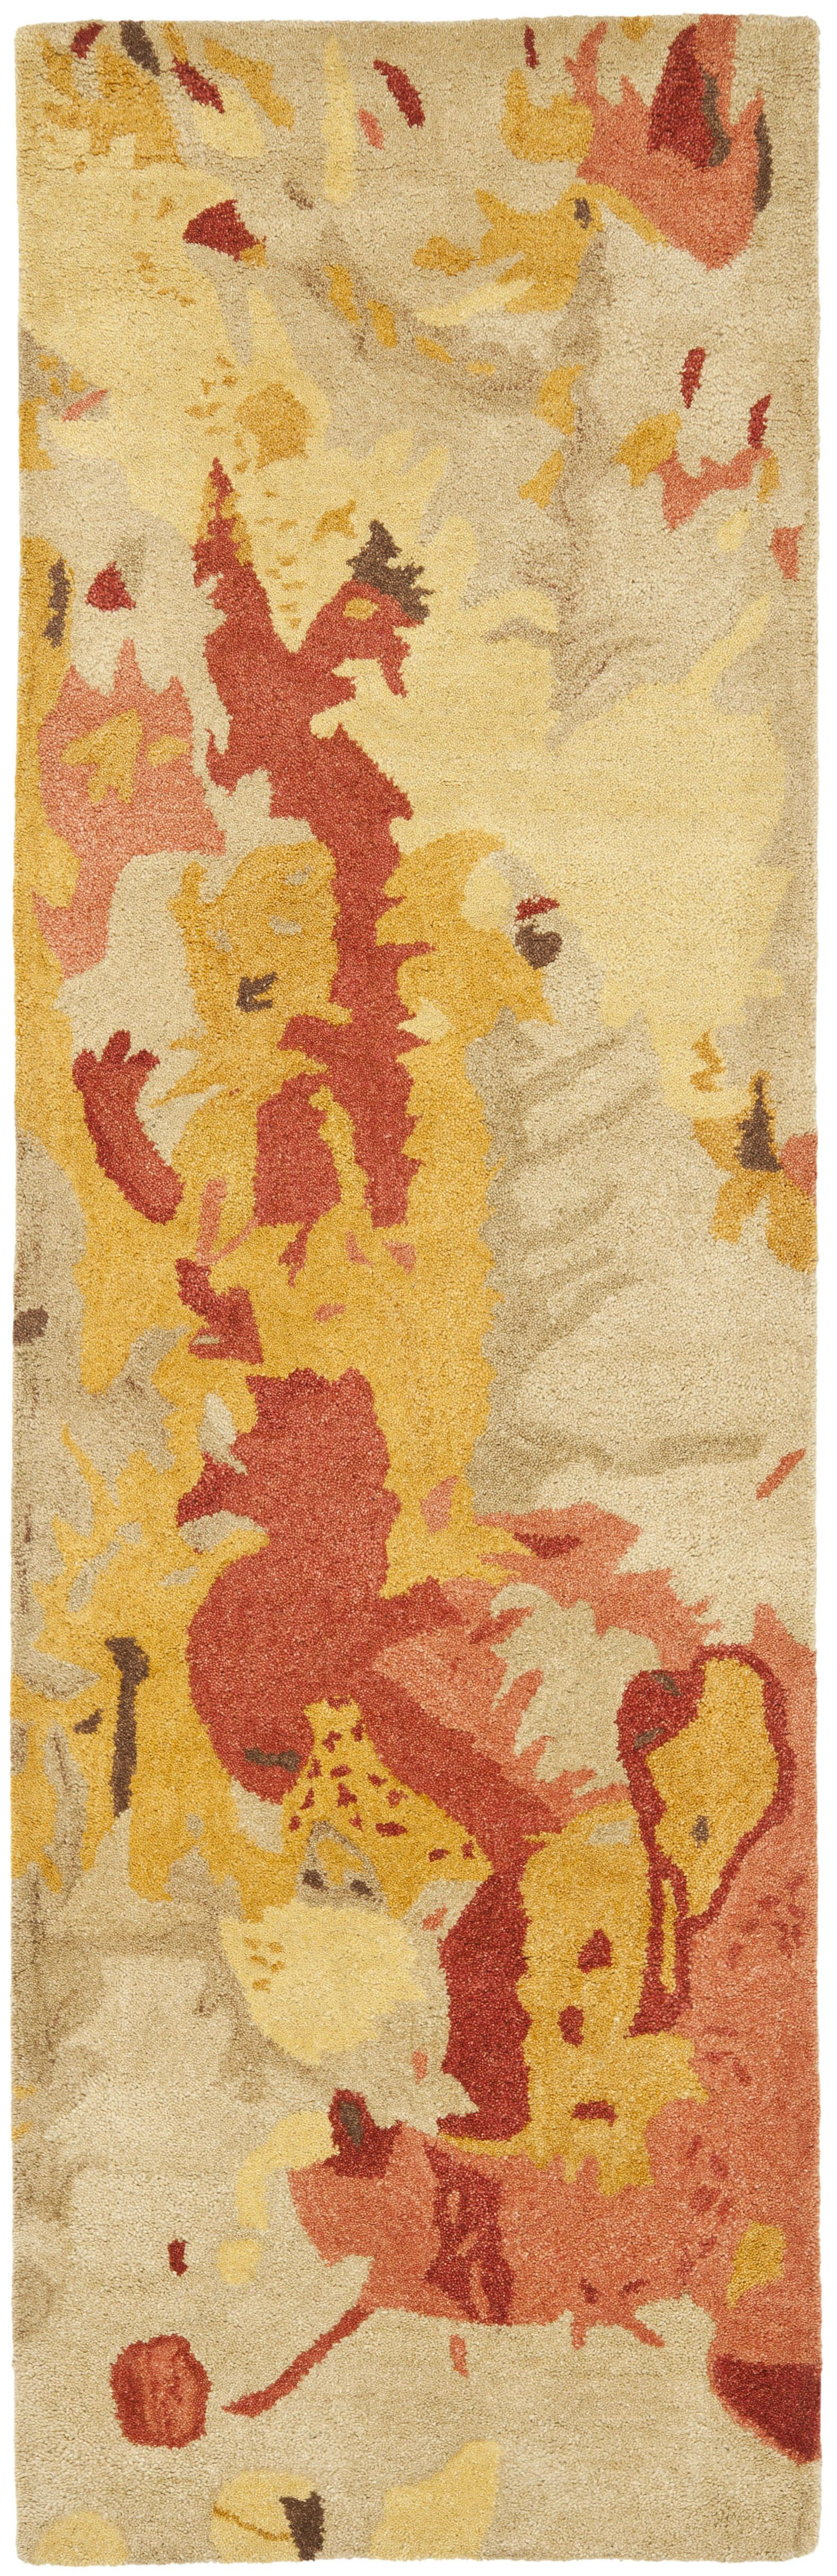 Lyon Beige & Orange Area Rug Rug Size: Runner 2'6